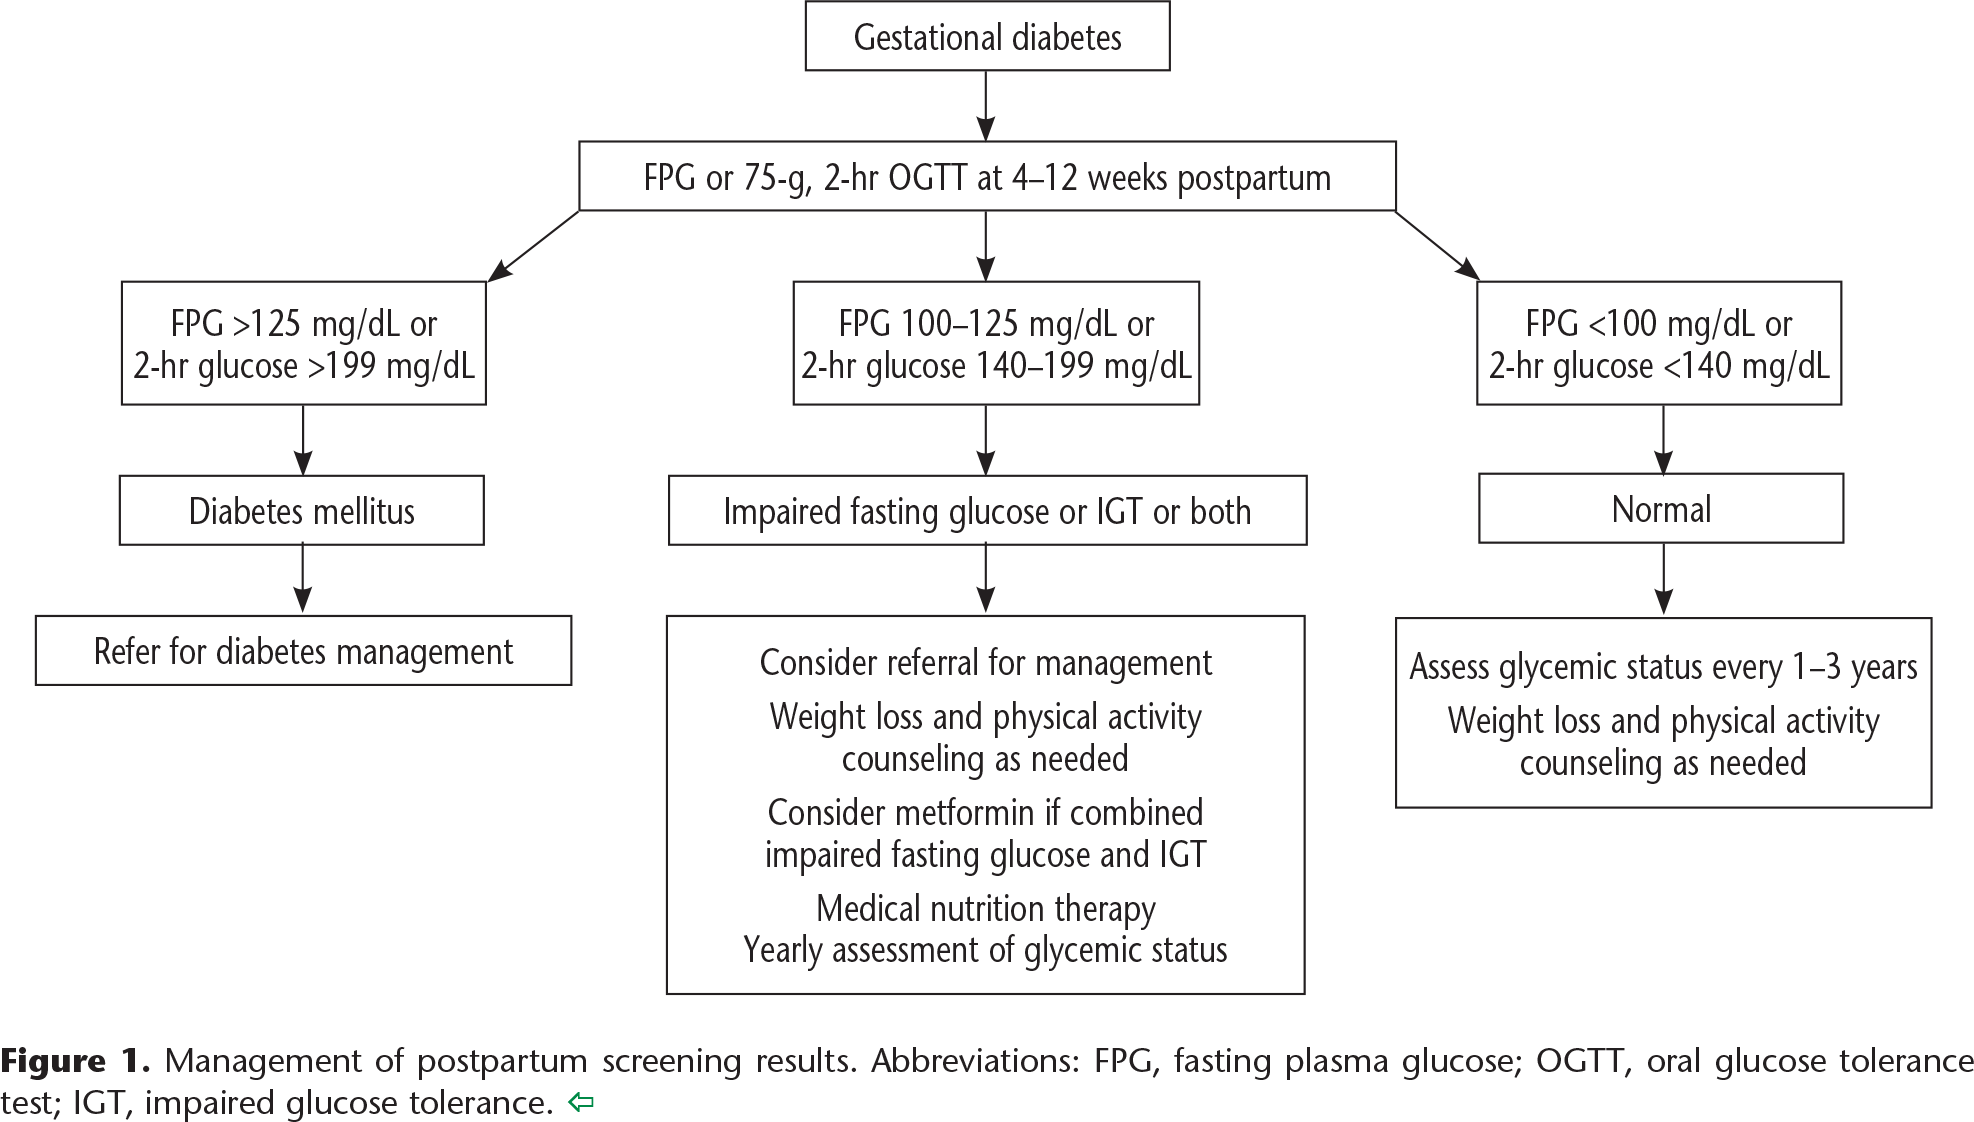 Figure 1. Management of postpartum screening results. Abbreviations: FPG, fasting plasma glucose; OGTT, oral glucose tolerance test; IGT, impaired glucose tolerance.